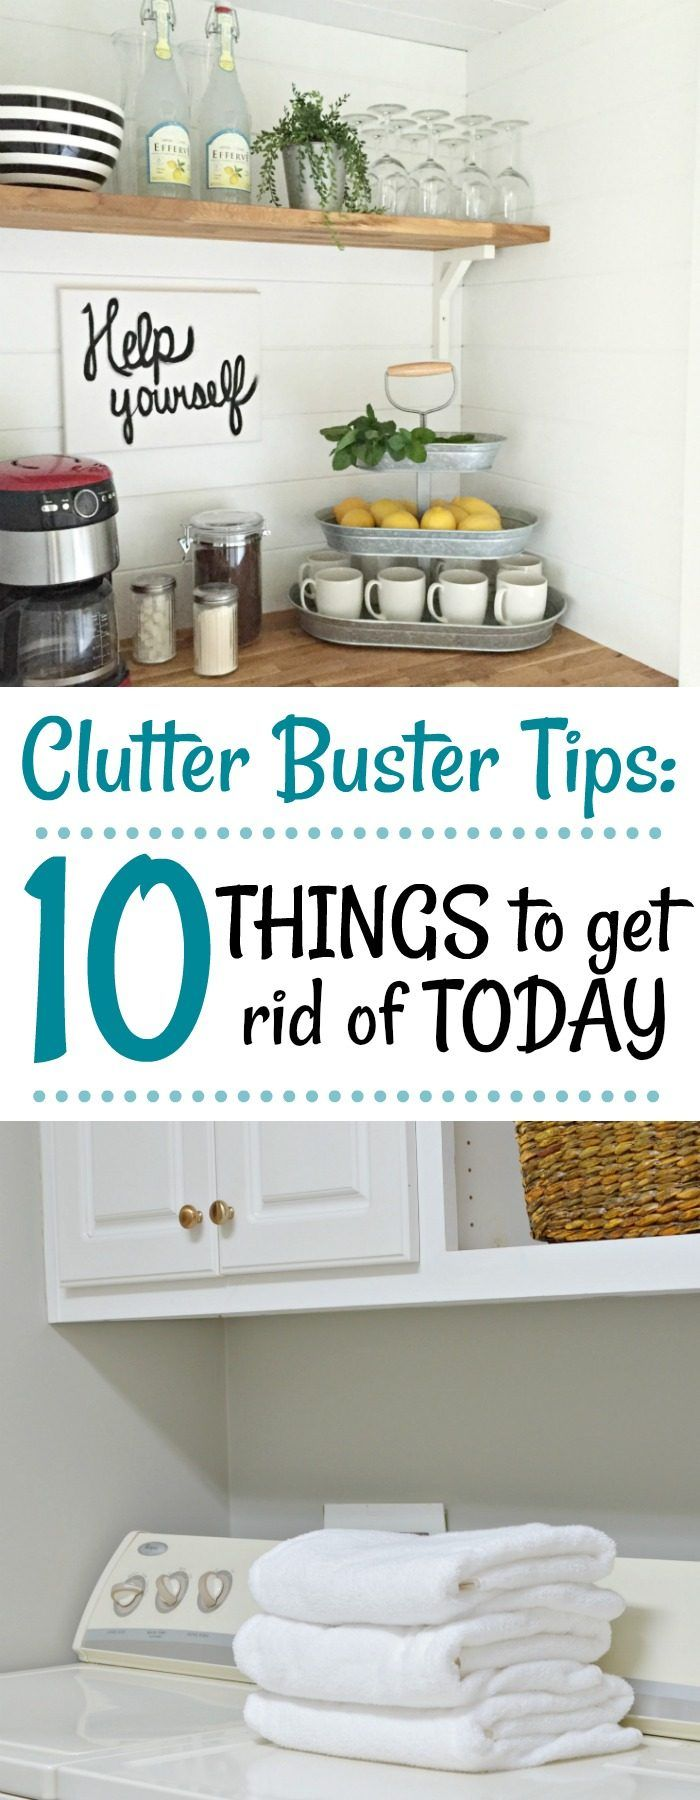 185788 best diy home decor images on pinterest diy for Best way to get rid of clutter